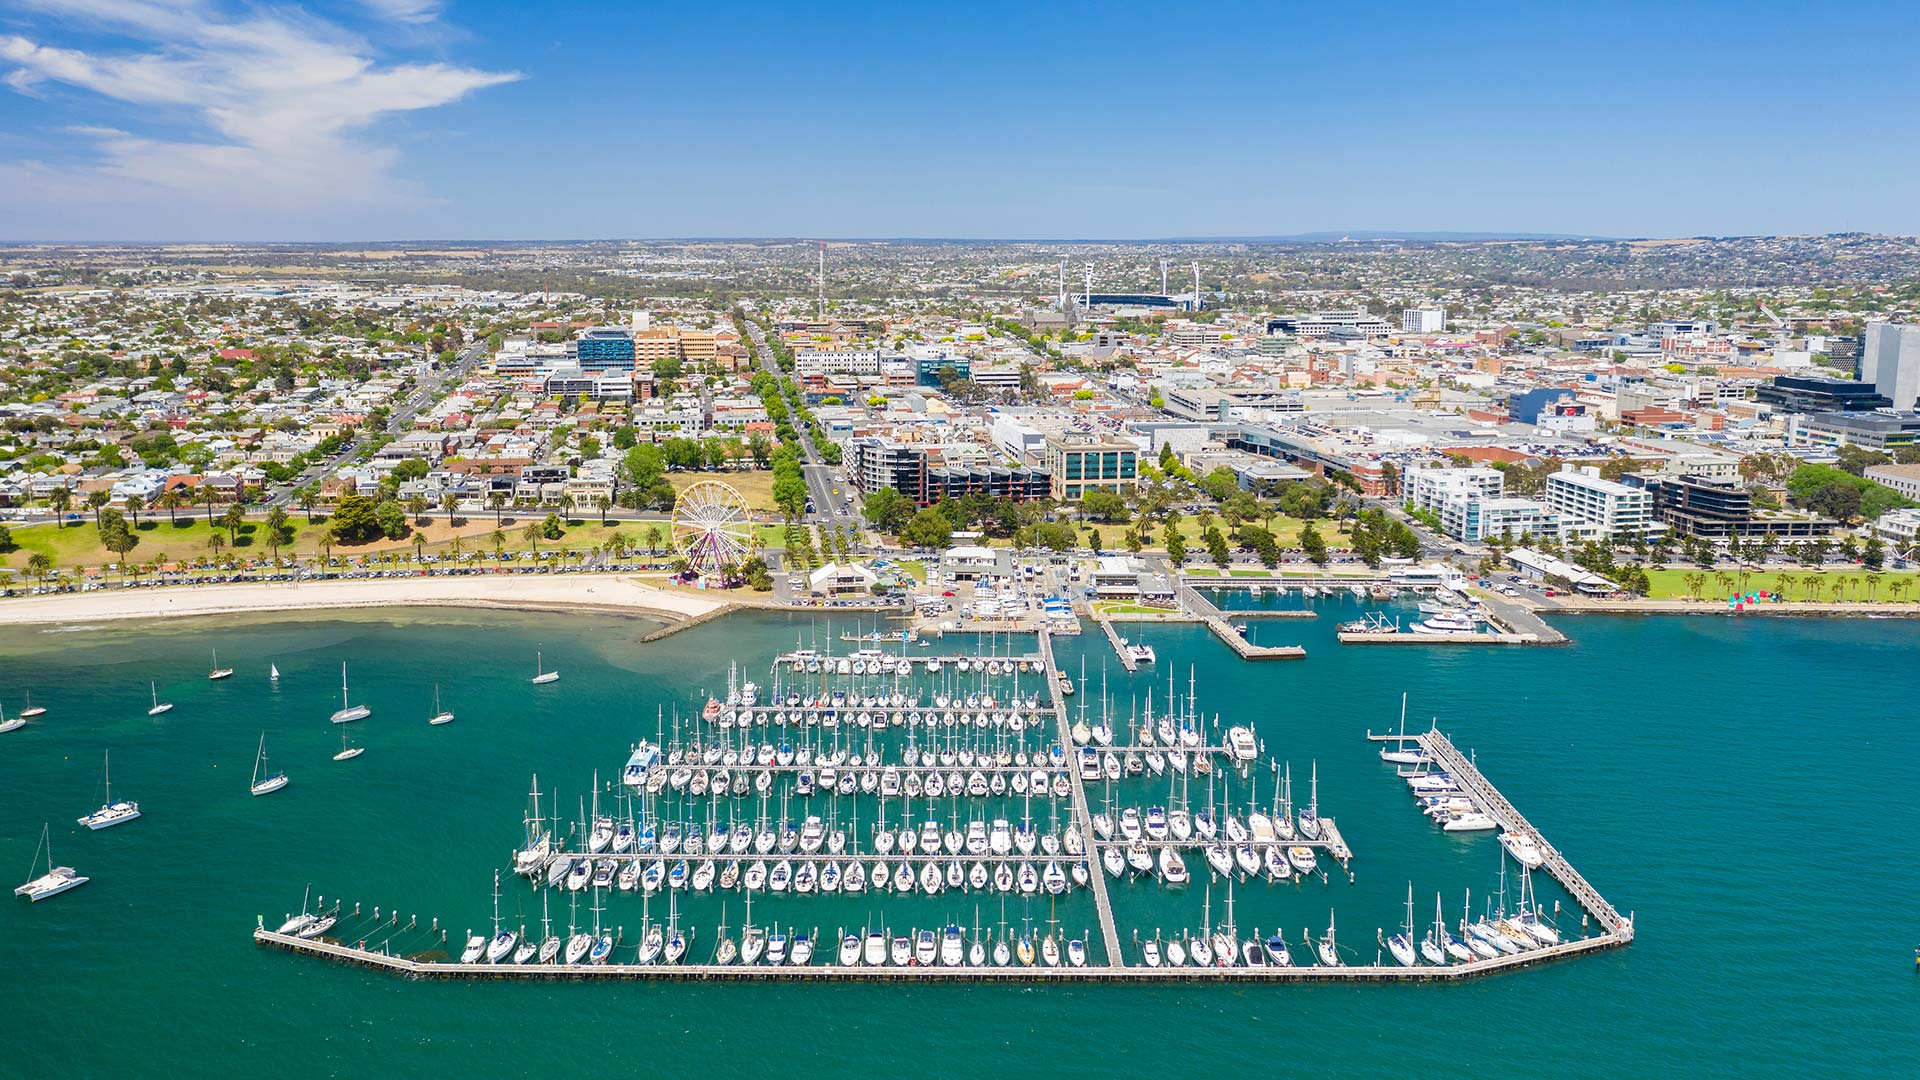 Panorama to illustrate dating in geelong